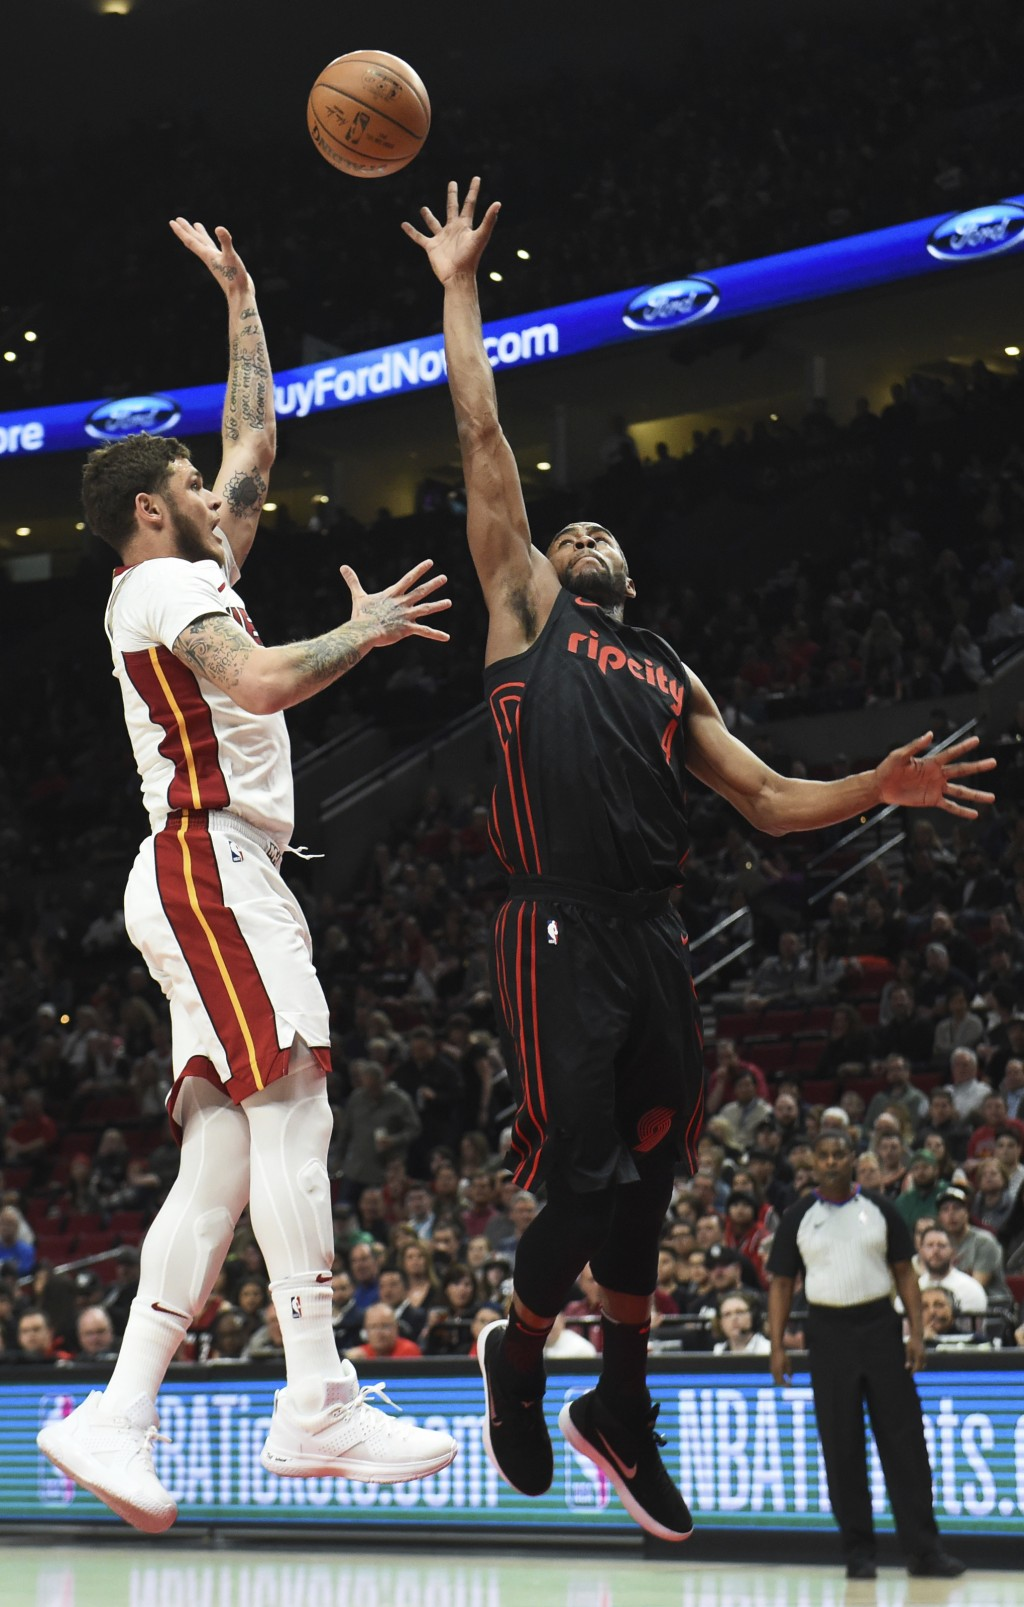 Miami Heat guard Tyler Johnson shoots against Portland Trail Blazers forward Maurice Harkless during the first half of an NBA basketball game in Portl